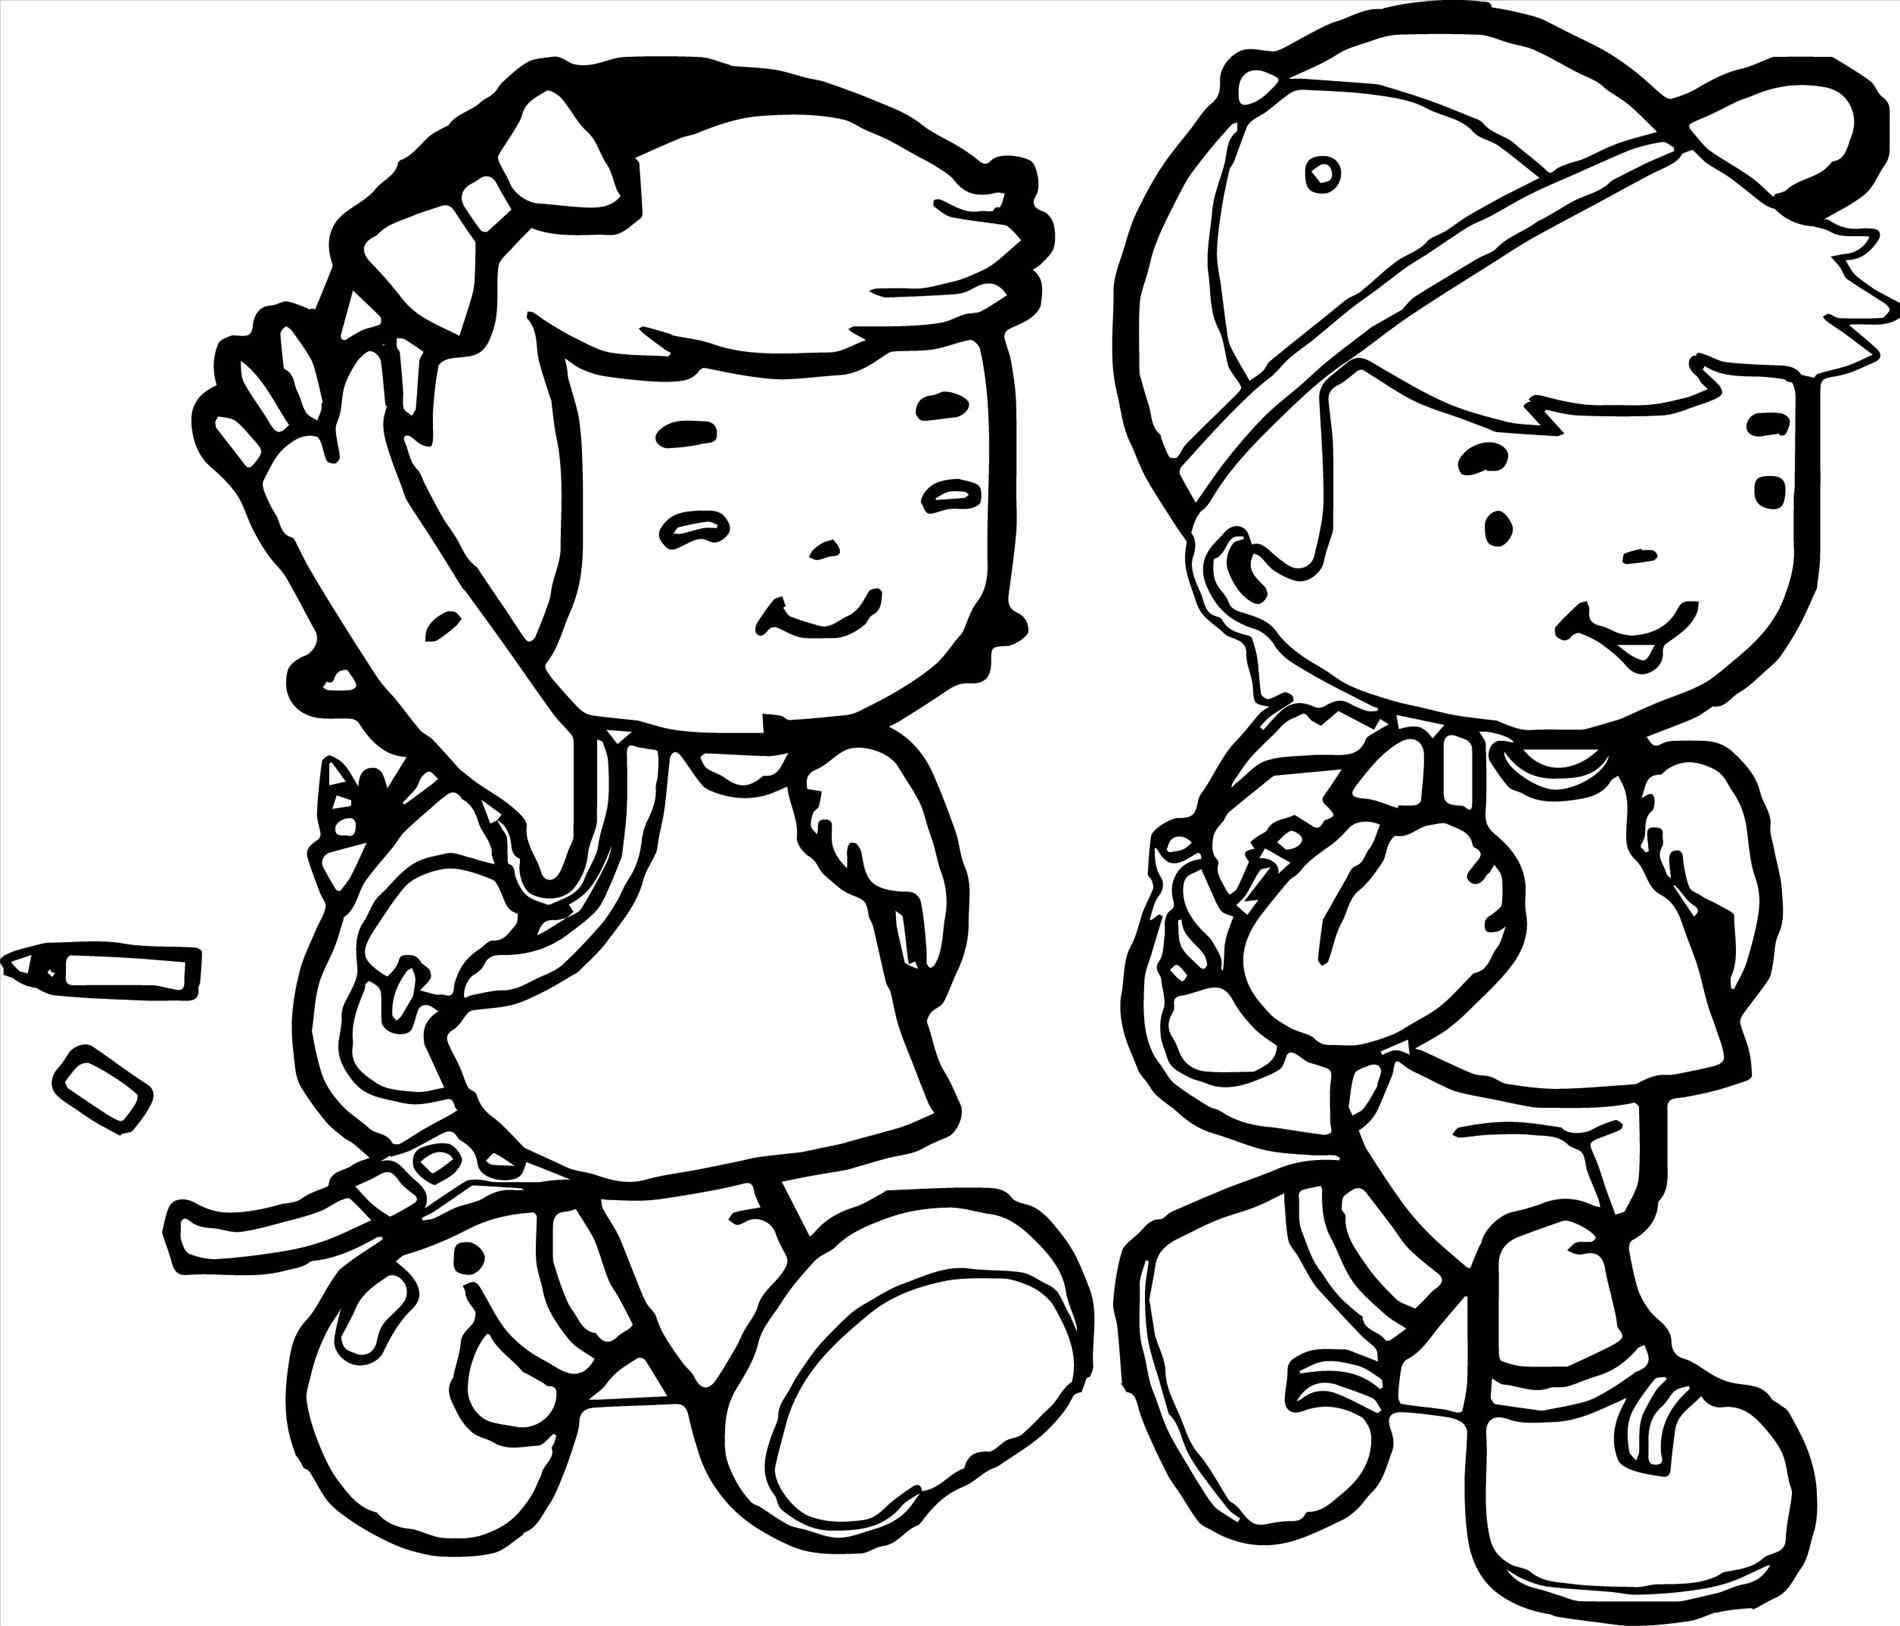 1900x1626 African People Coloring Pages Online Coloring Printable